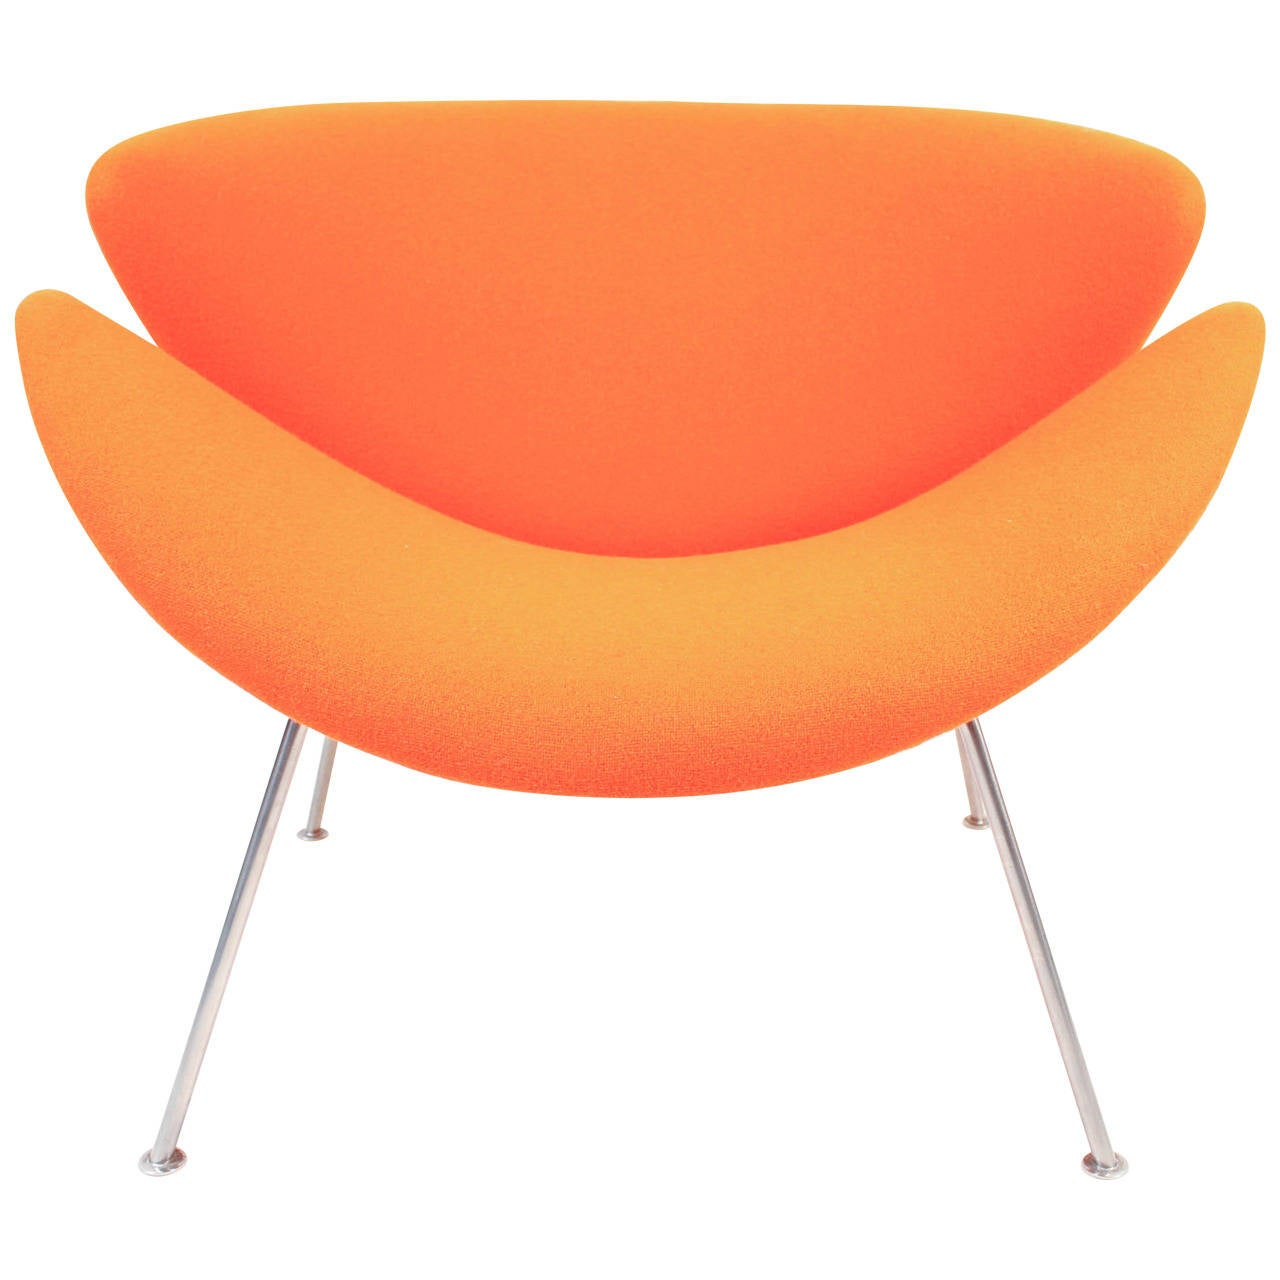 orange slice chair office back pain vintage f437 by pierre paulin for